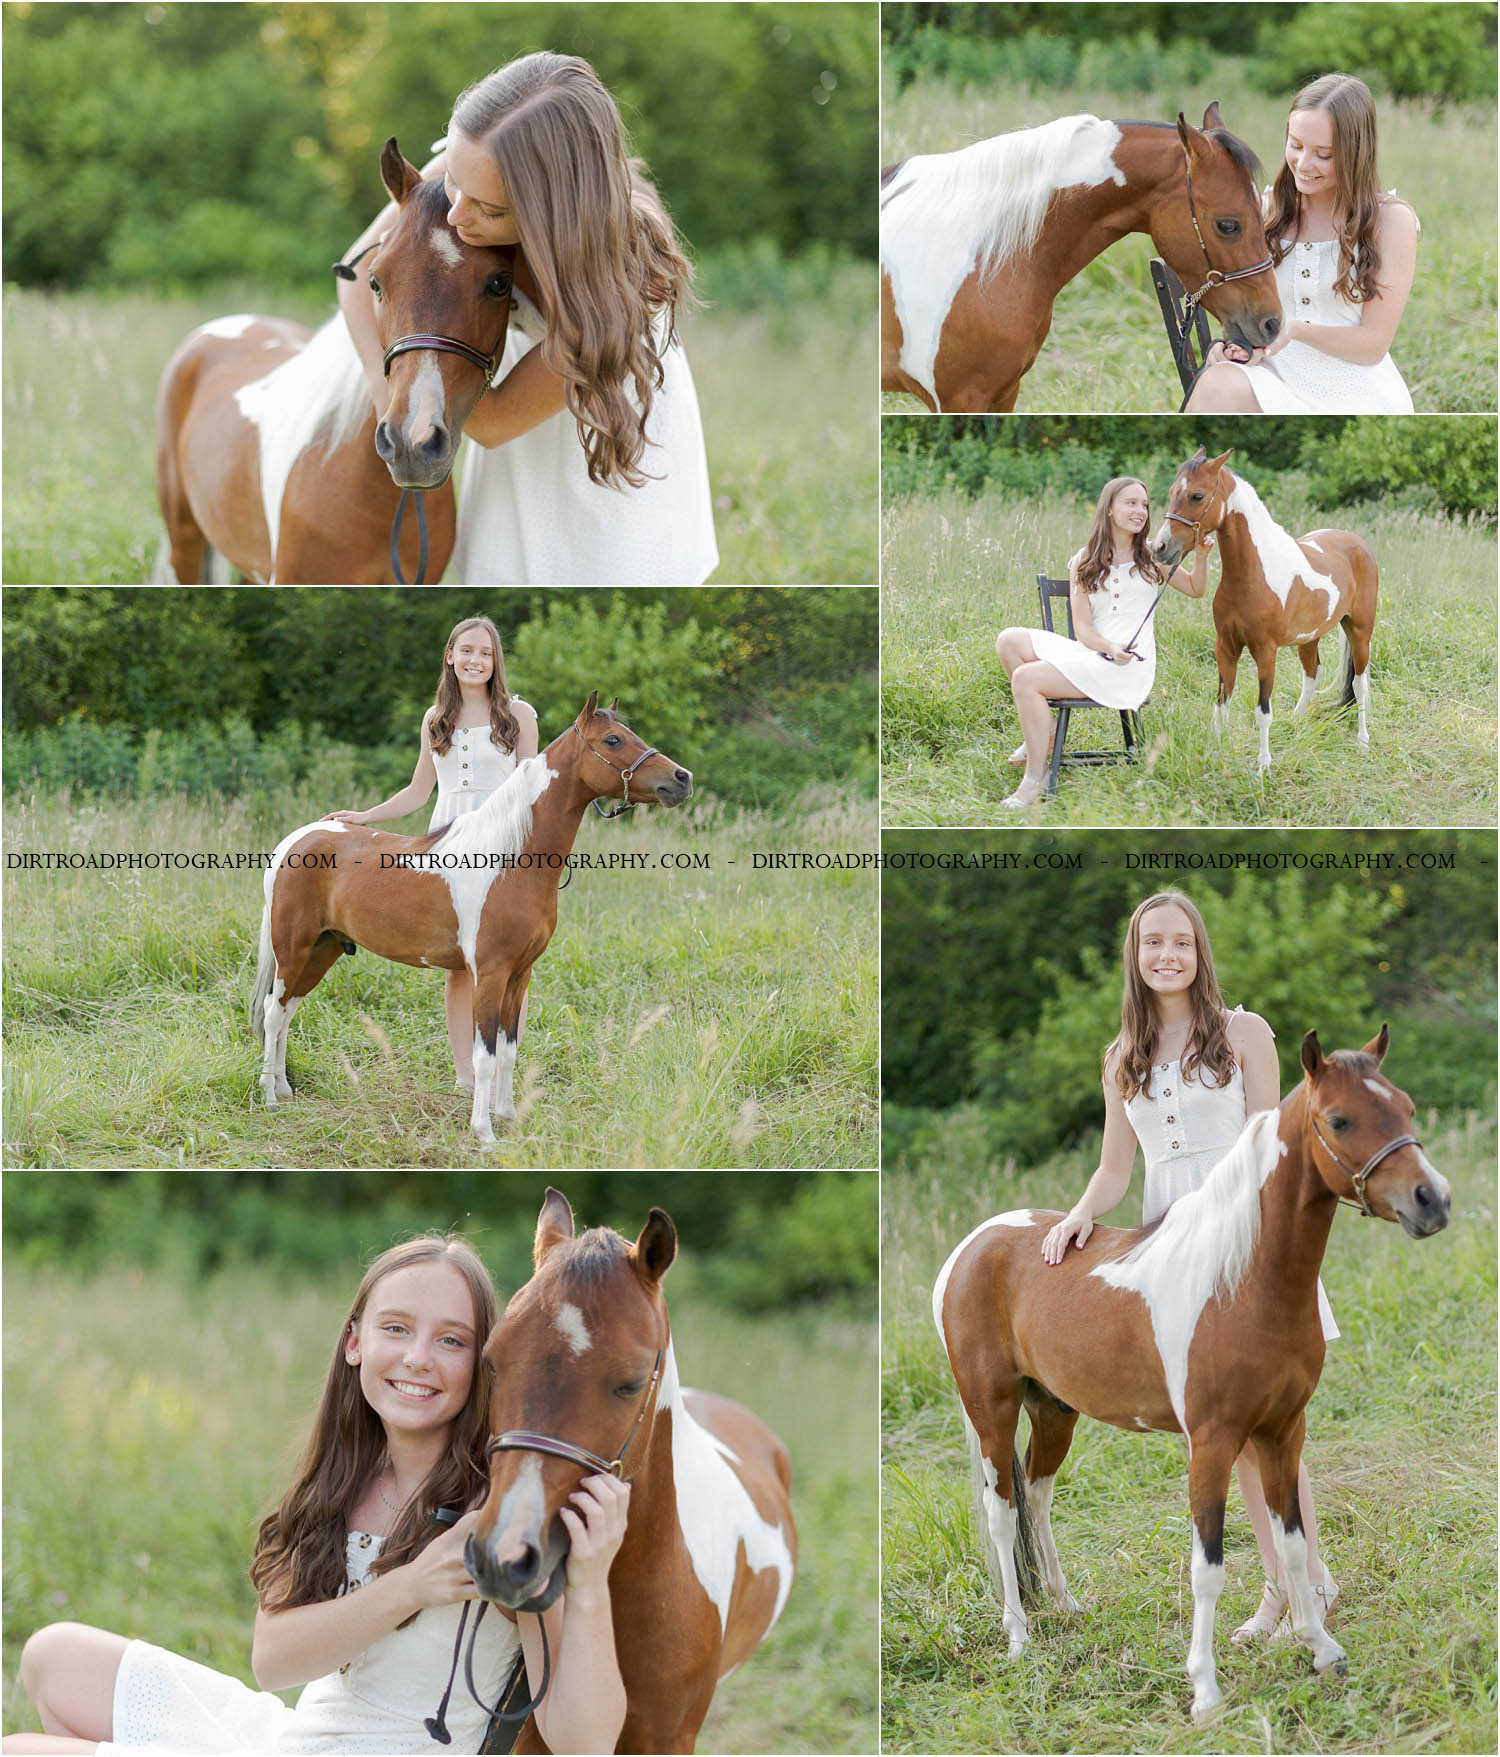 images of high school girl senior photos named shelby timmerman of wilber nebraska who went to wilber-clatonia high school in wilber nebraska and is part of the class of 2020. photos were taken near wilber nebraska in saline county at farms and on dirt roads. photo includes tall glass buildings, horses, show horses, white dresses, summer, sunsets, and dirt roads. shelby is also wearing maroon tank top with blue denim jeans as well as striped blue romper and sandals. girl is dressed in white lace dress with long brown curly hair and styled make-up. dirt road surrounded by trees and dust at sunset. tall grass with a sunset behind as well. photographer is kelsey homolka nerud of wilber nebraska who specializes in high school senior photography and senior pictures.